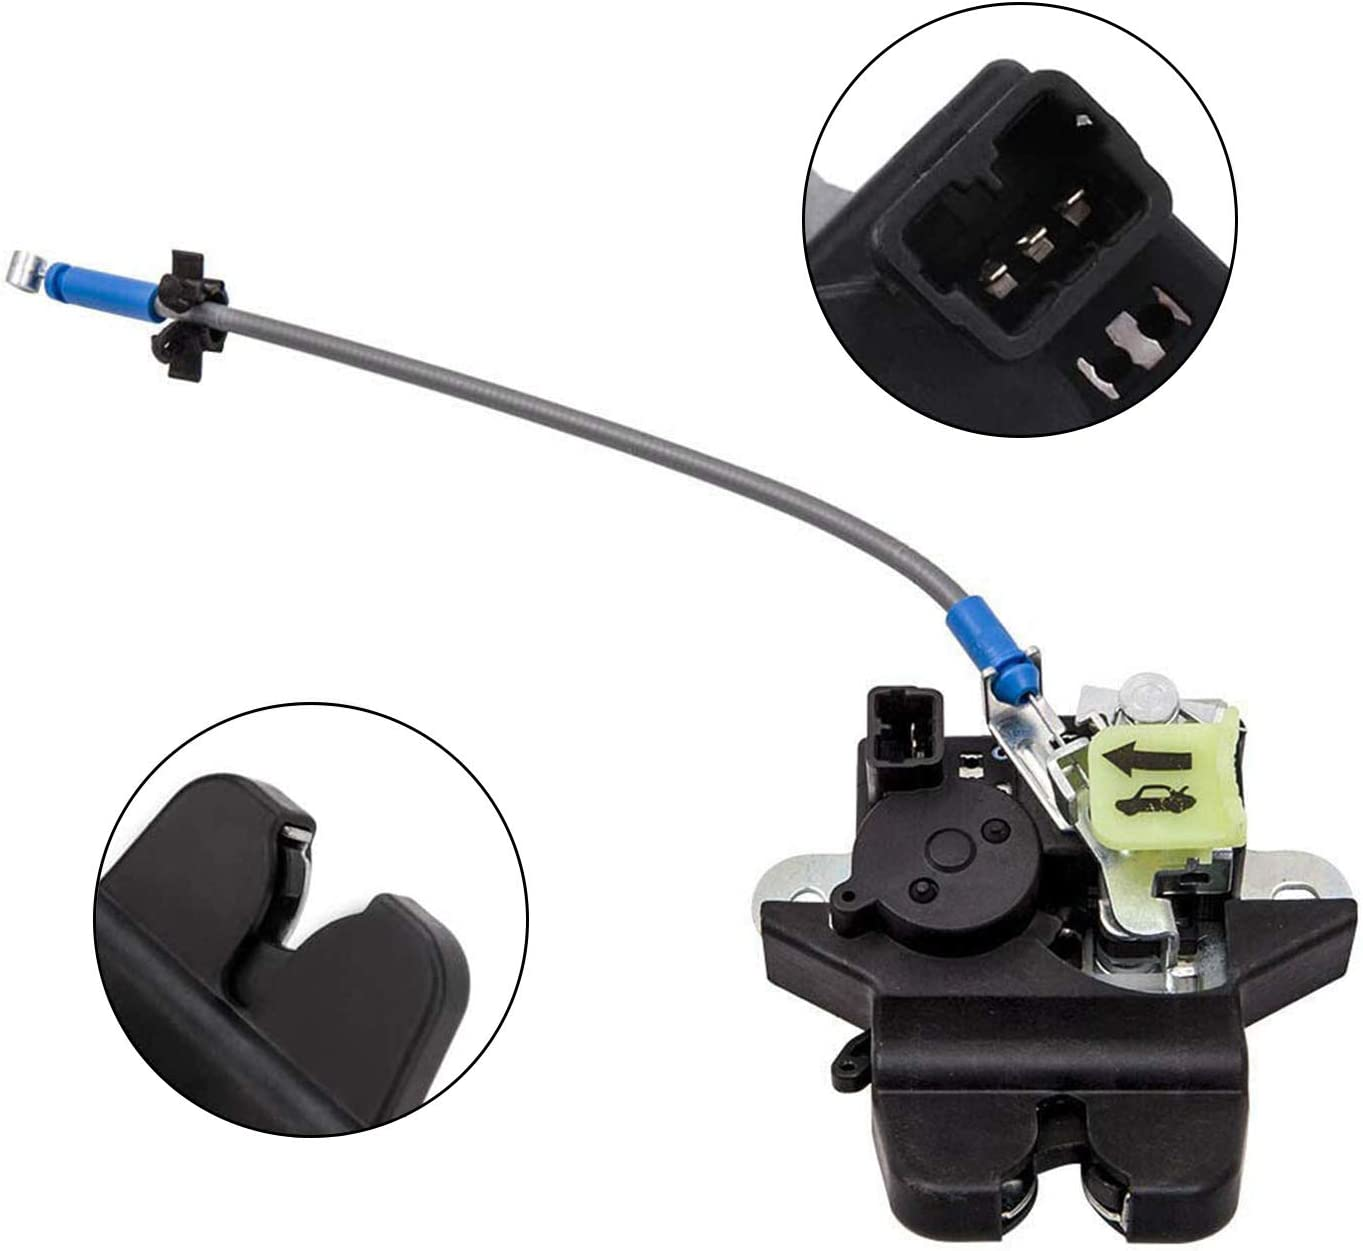 Trunk Lid Lock Latch Trunk Lid Latch Lock Assembly 81230-C1010 Compatible with 2015 2016 2017 Hyundai Sonata 1.6L 2.0L 2.4L Engines 81230-C1010 81230C1010